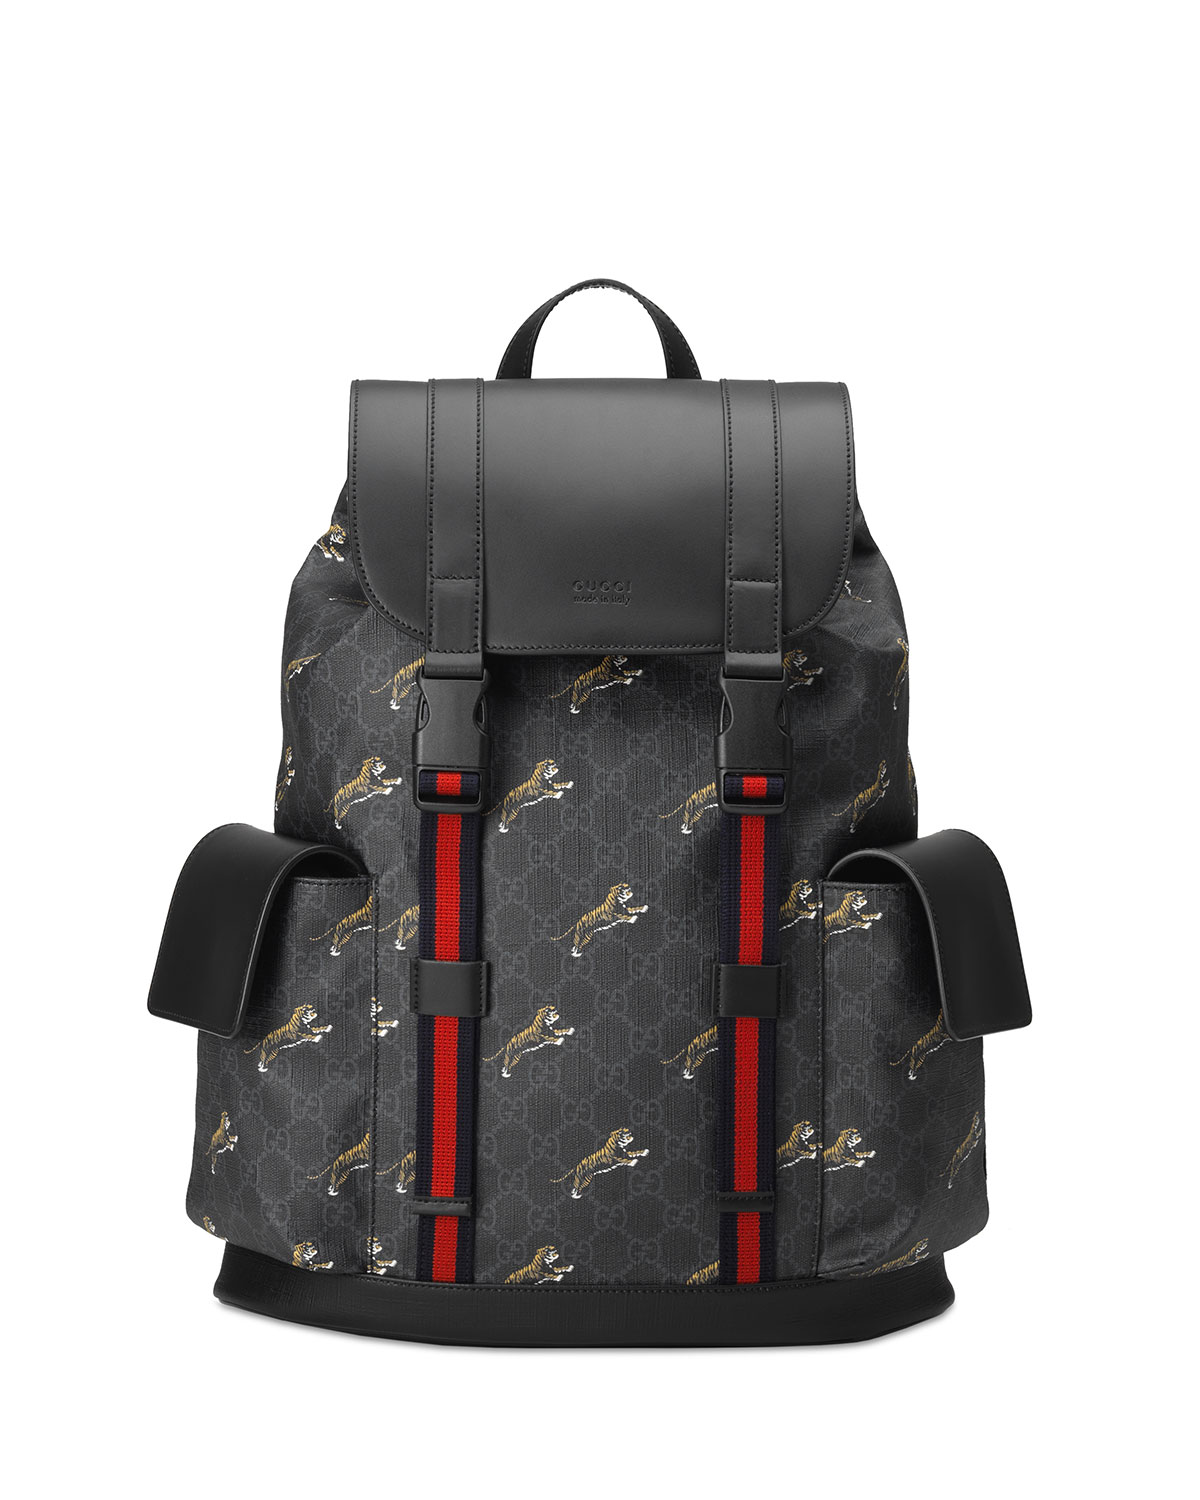 95373eab7392 Gg Supreme Canvas Backpack Black - Restaurant Grotto Ticino ...